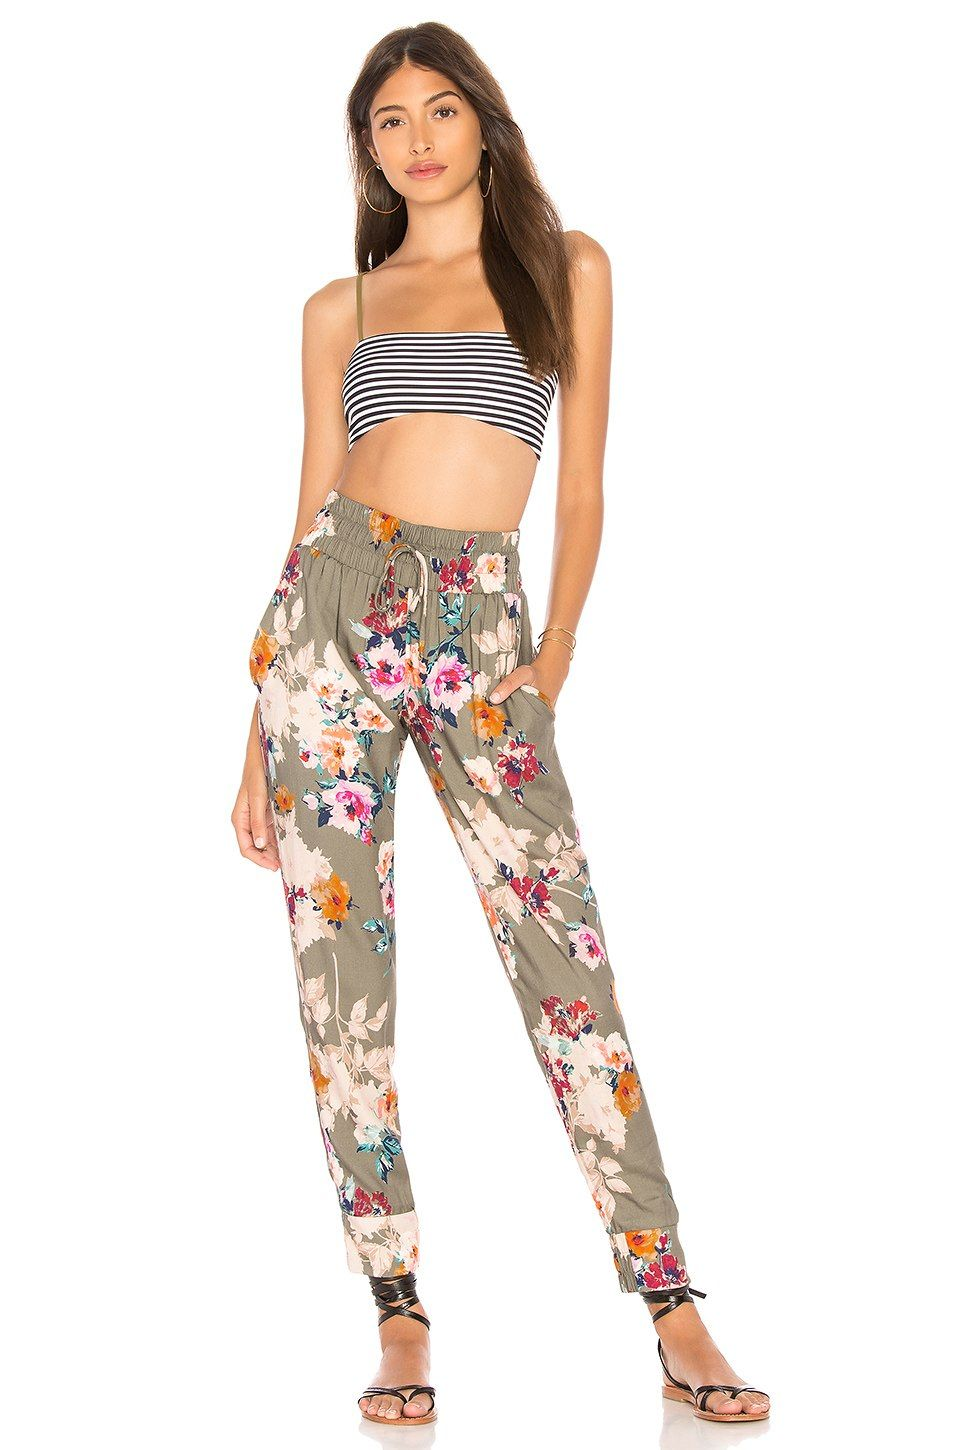 Boys arrows over u out pants in darling revolve spring